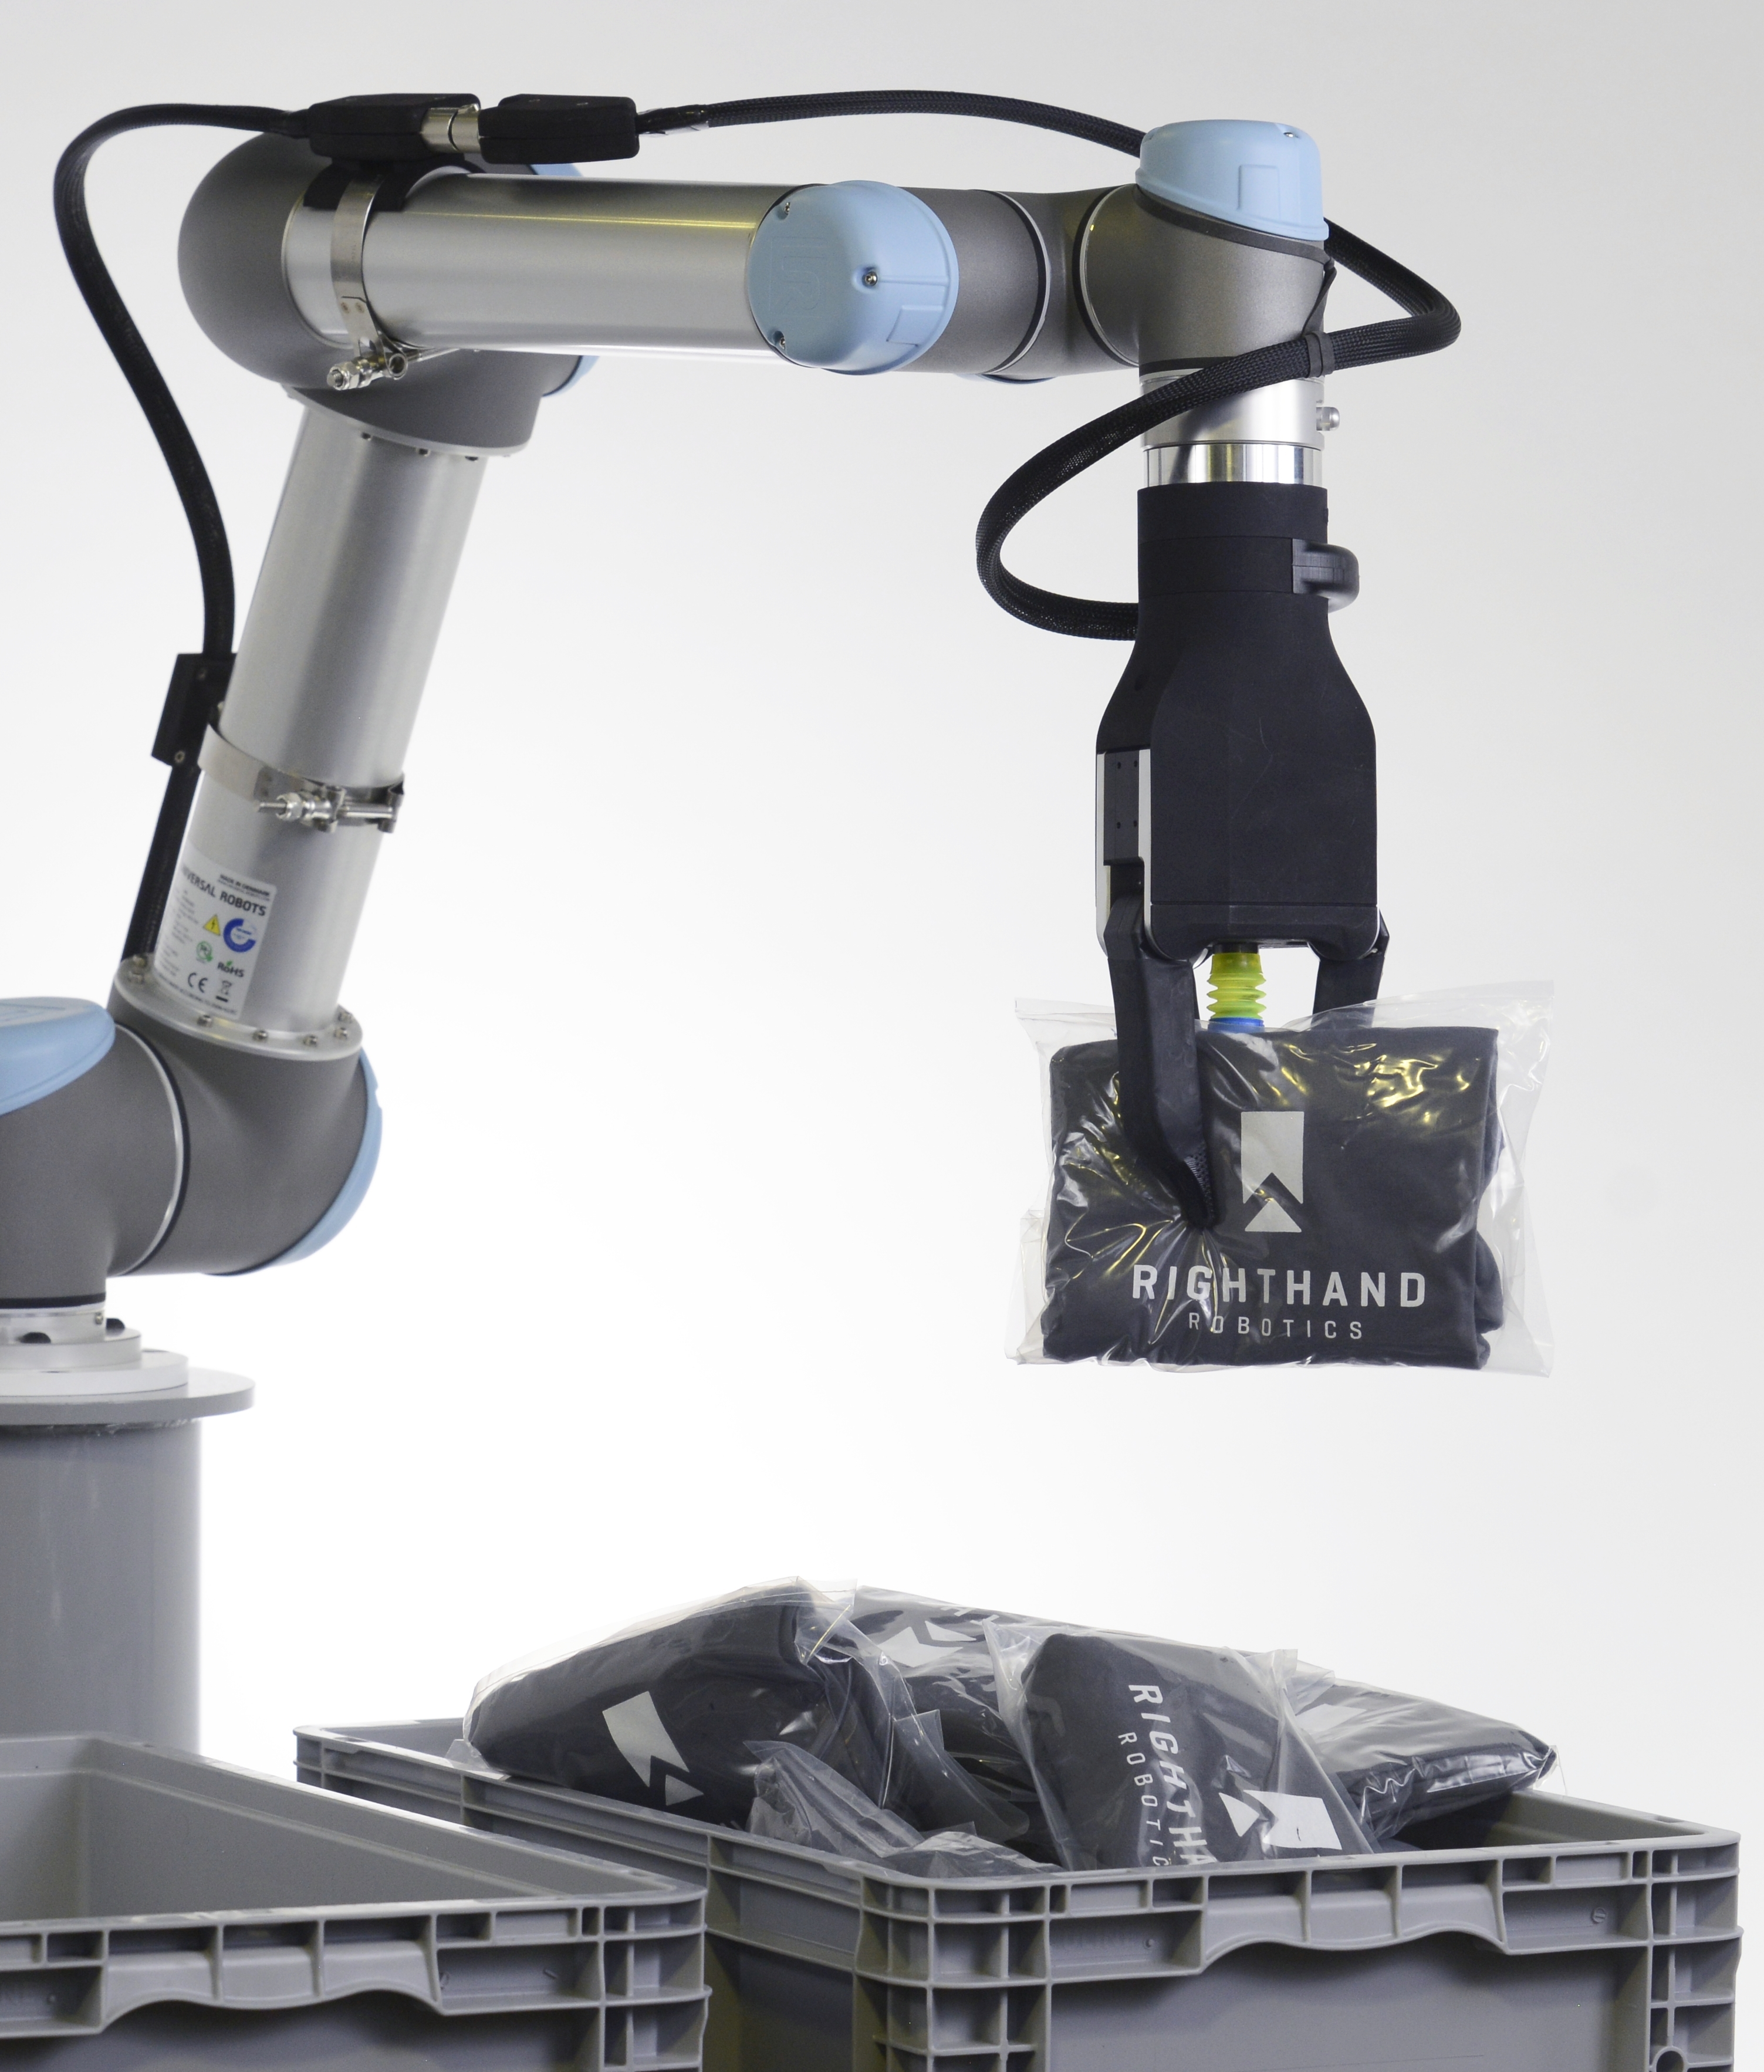 Image result for righthand robotics